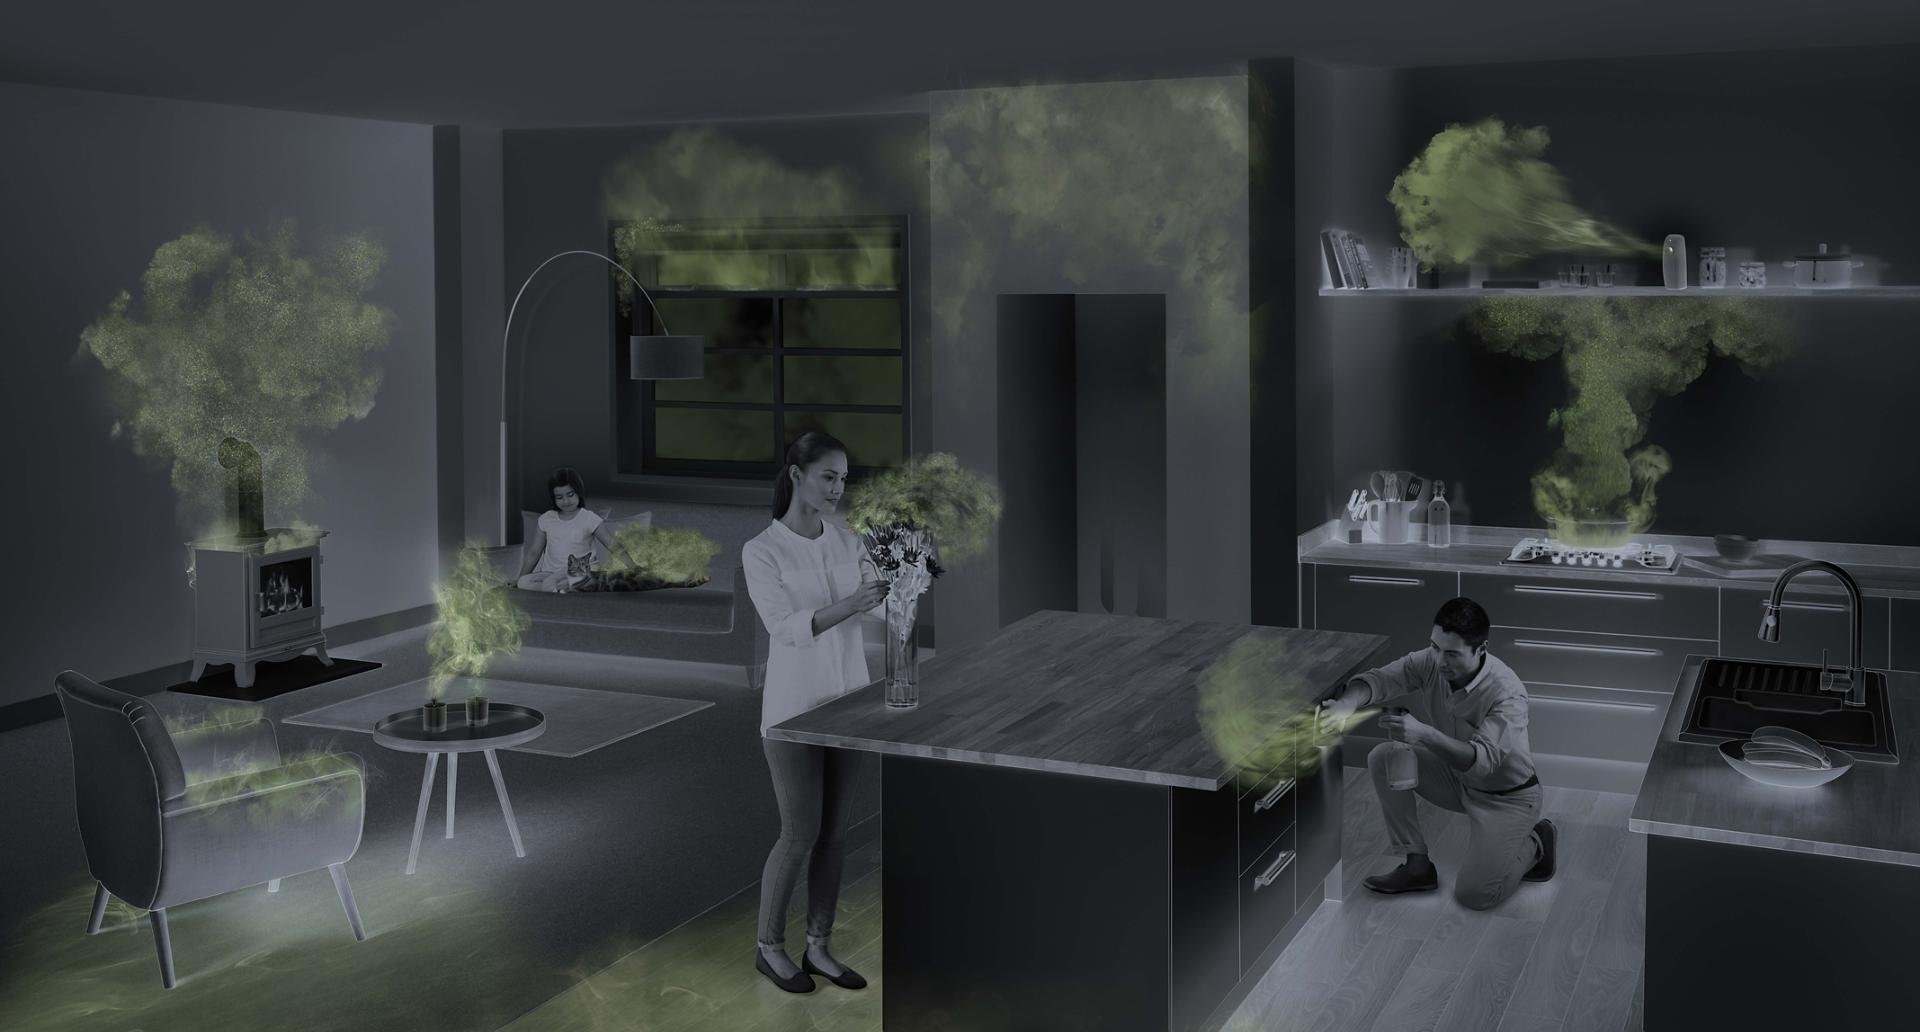 Demonstration of harmful pollutants around a family room